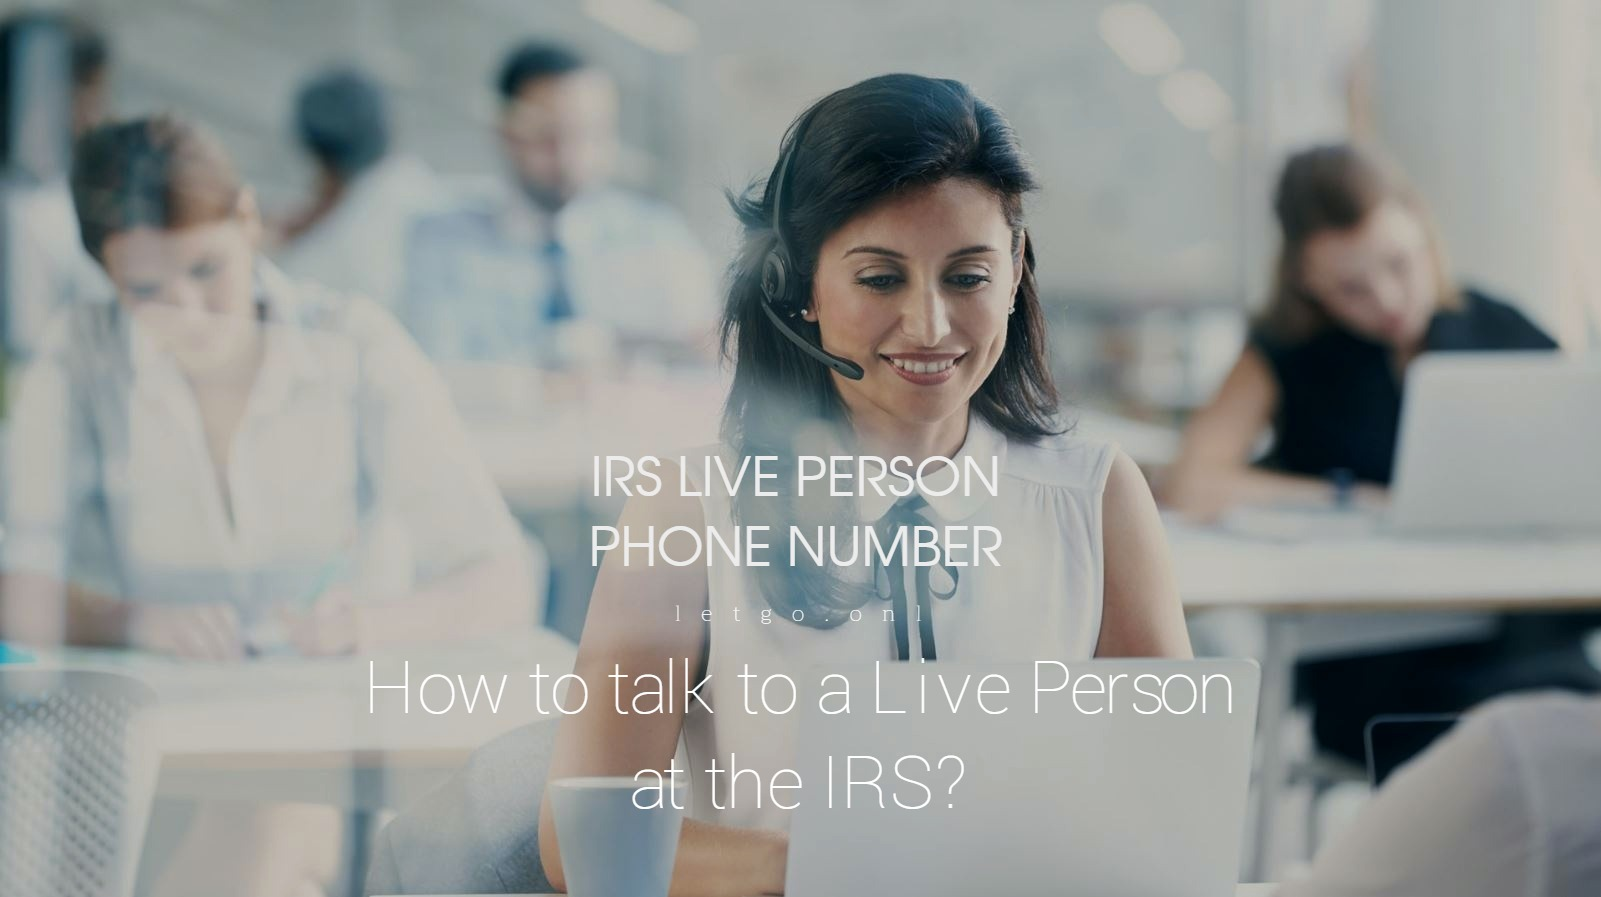 IRS Live Person Phone Number